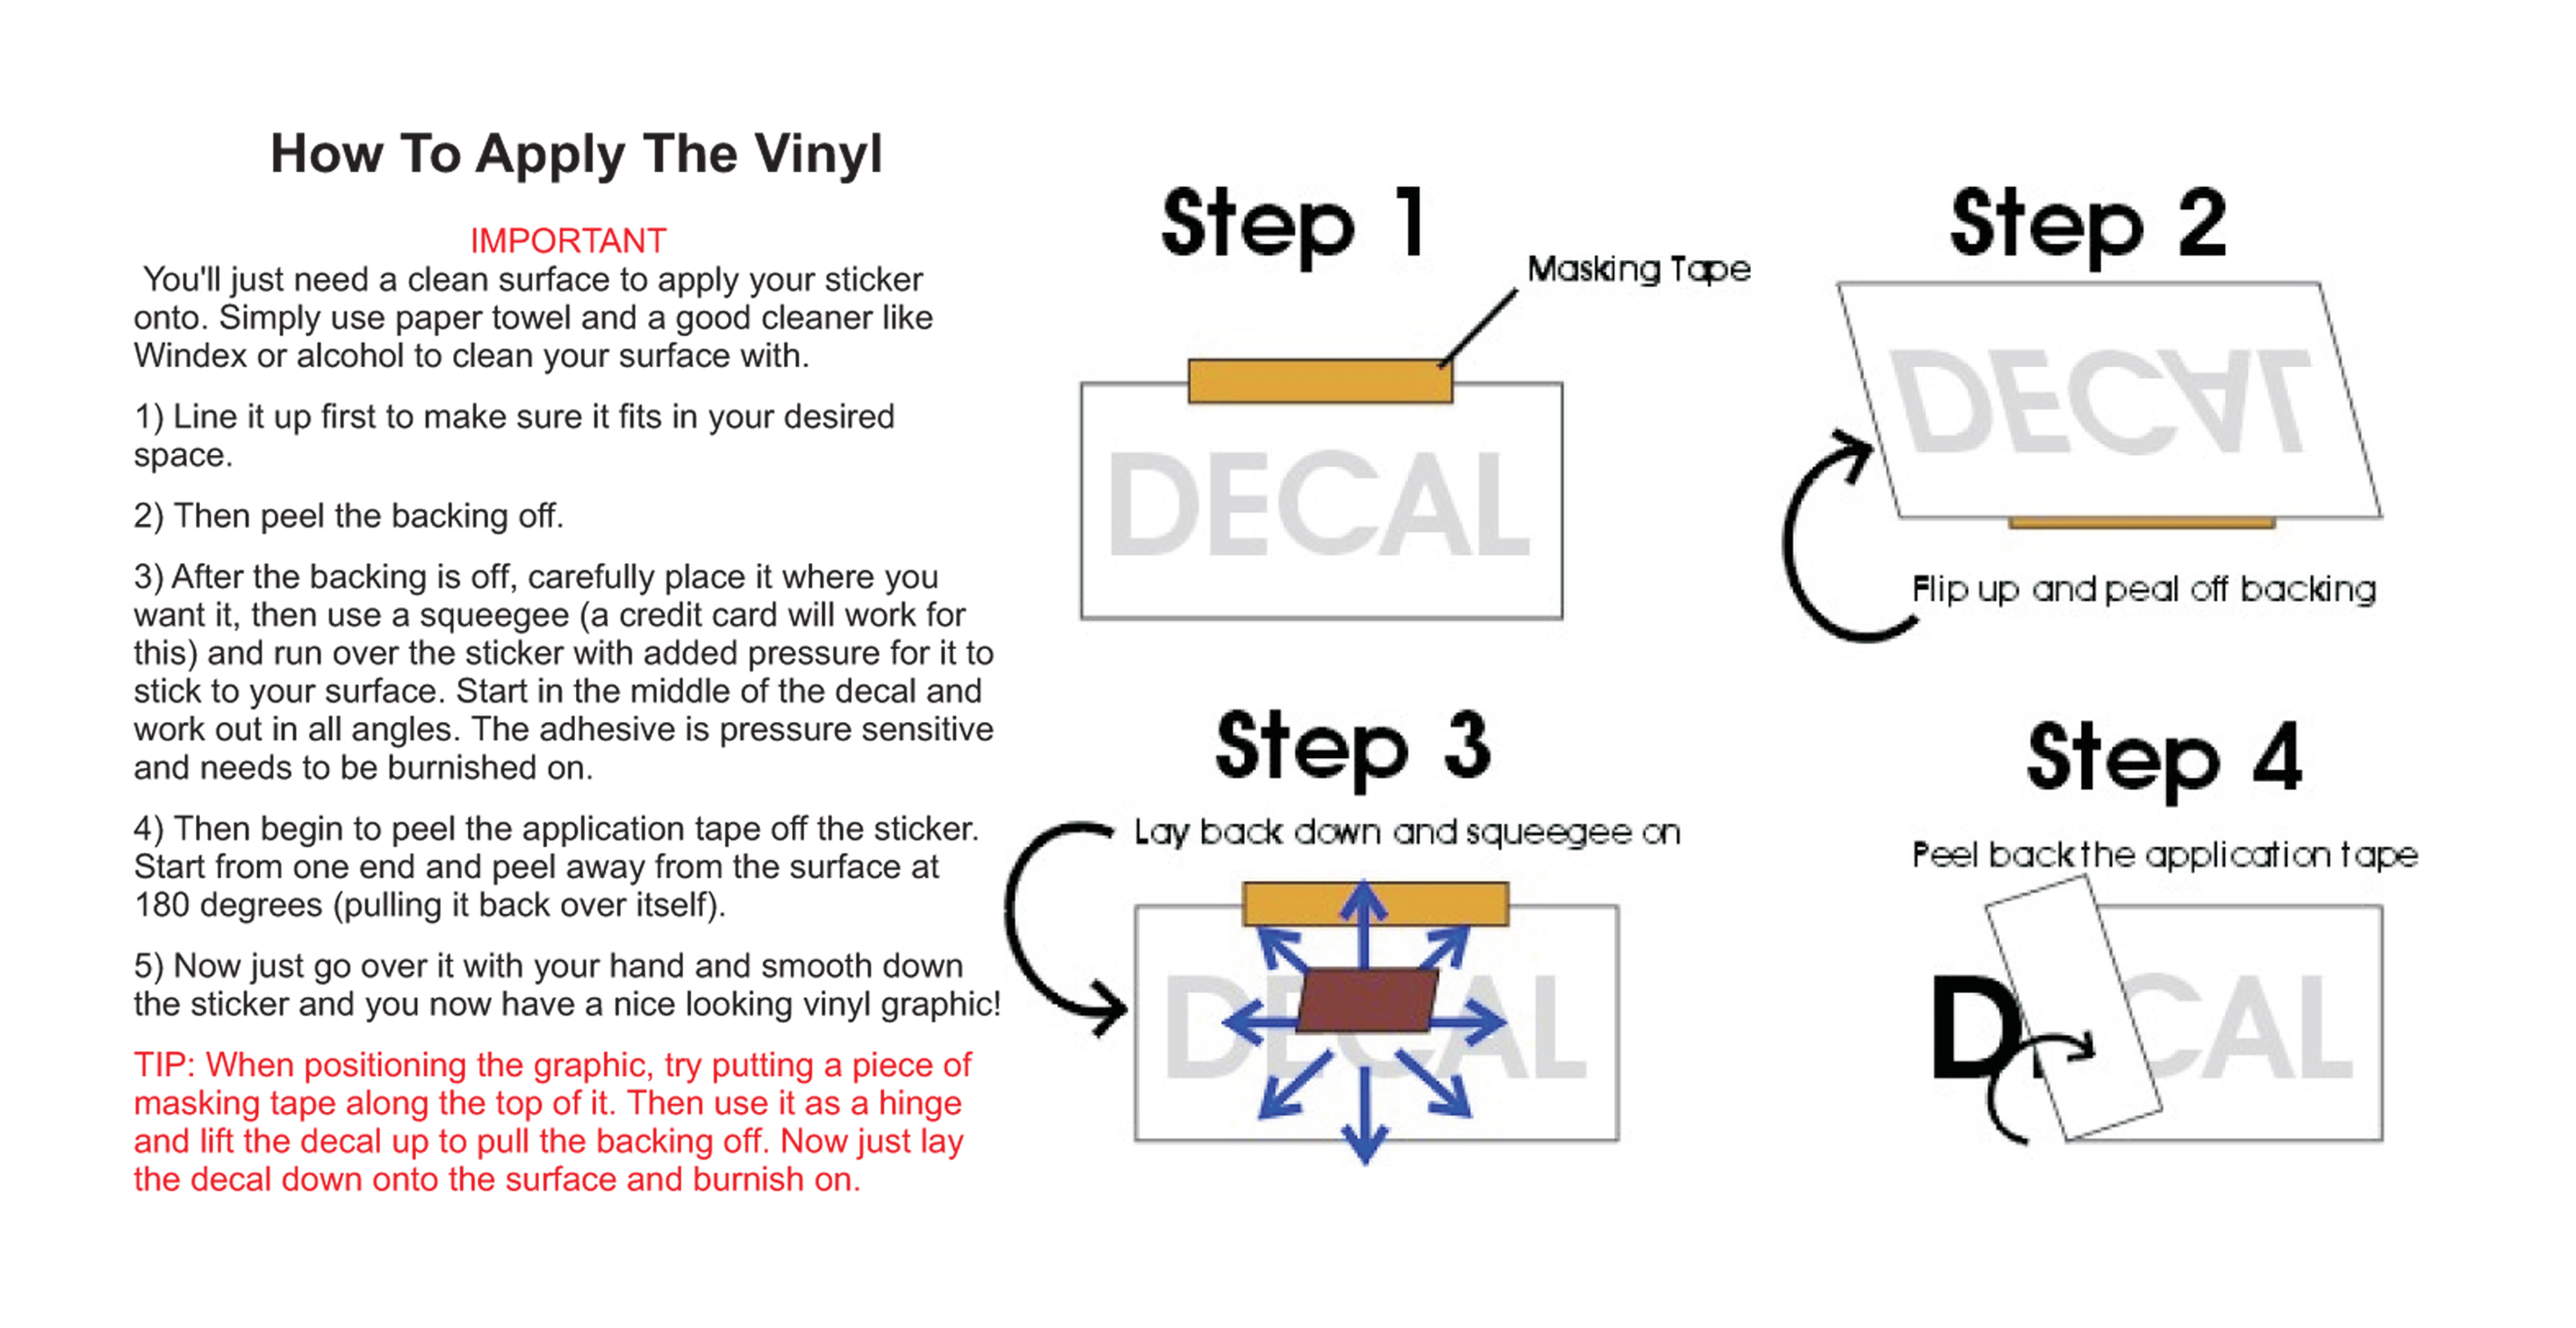 Vinyl Car Decal Instructions Driverlayer Search Engine